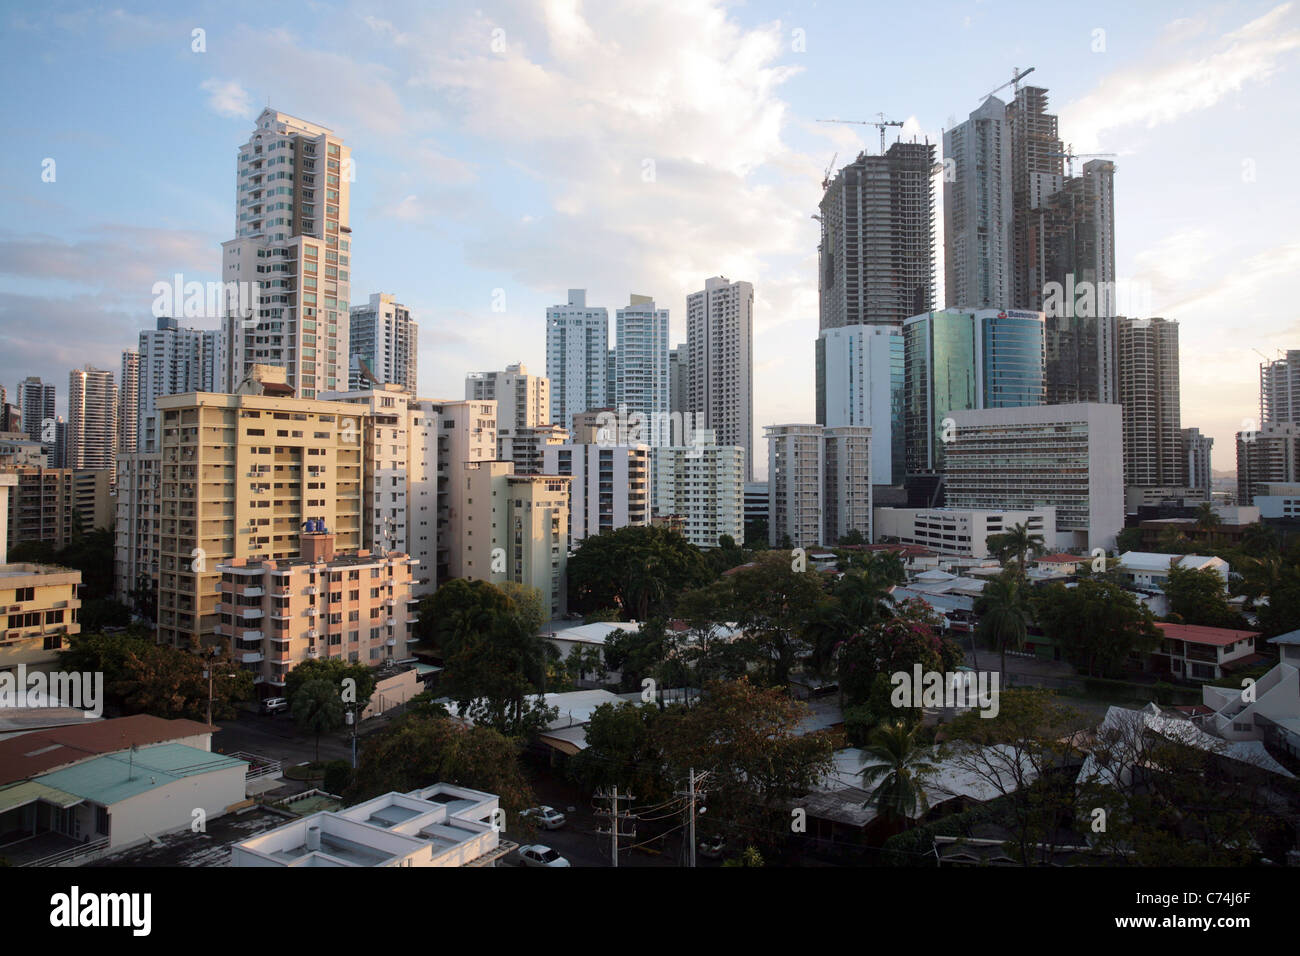 View of the financial and banking area of Panama City, around Marbella, seen from the Riu Hotel. - Stock Image